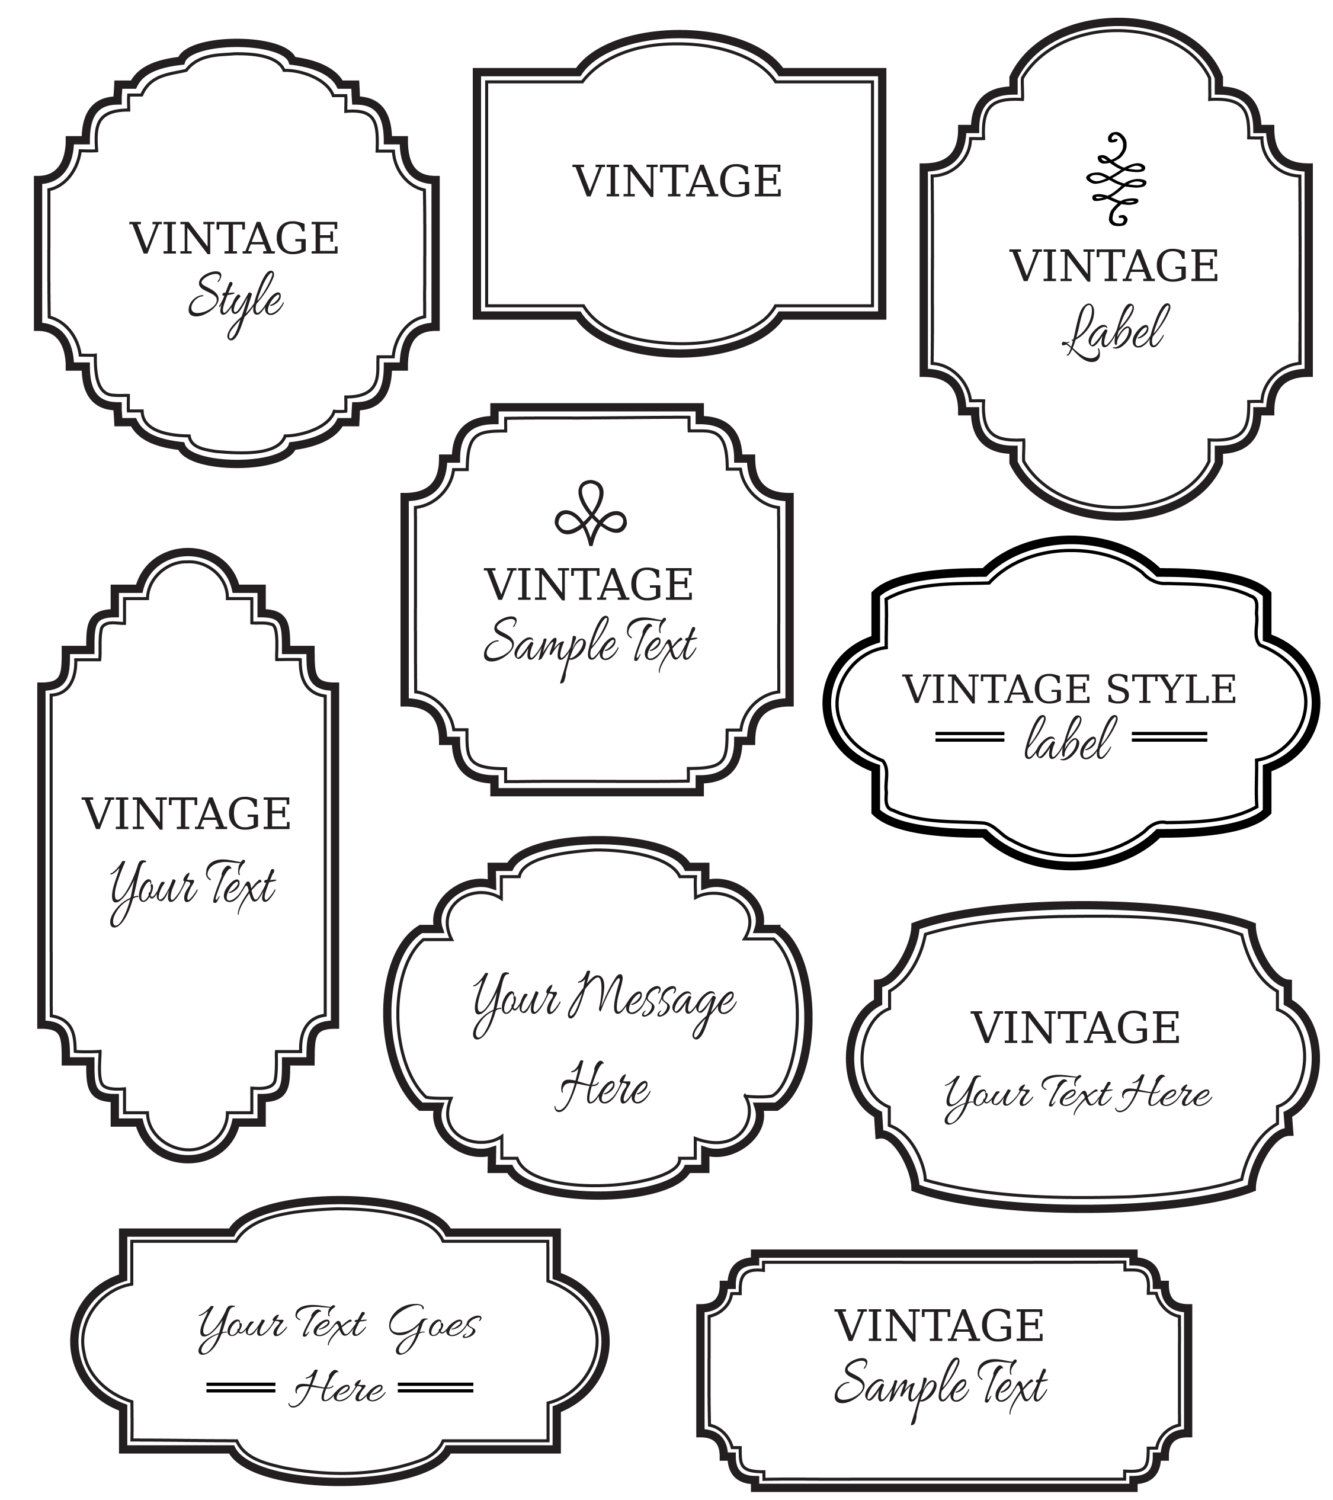 Vintage Labels Clip Art Digital Frame Vector Eps Editable Diy Cards Invitation